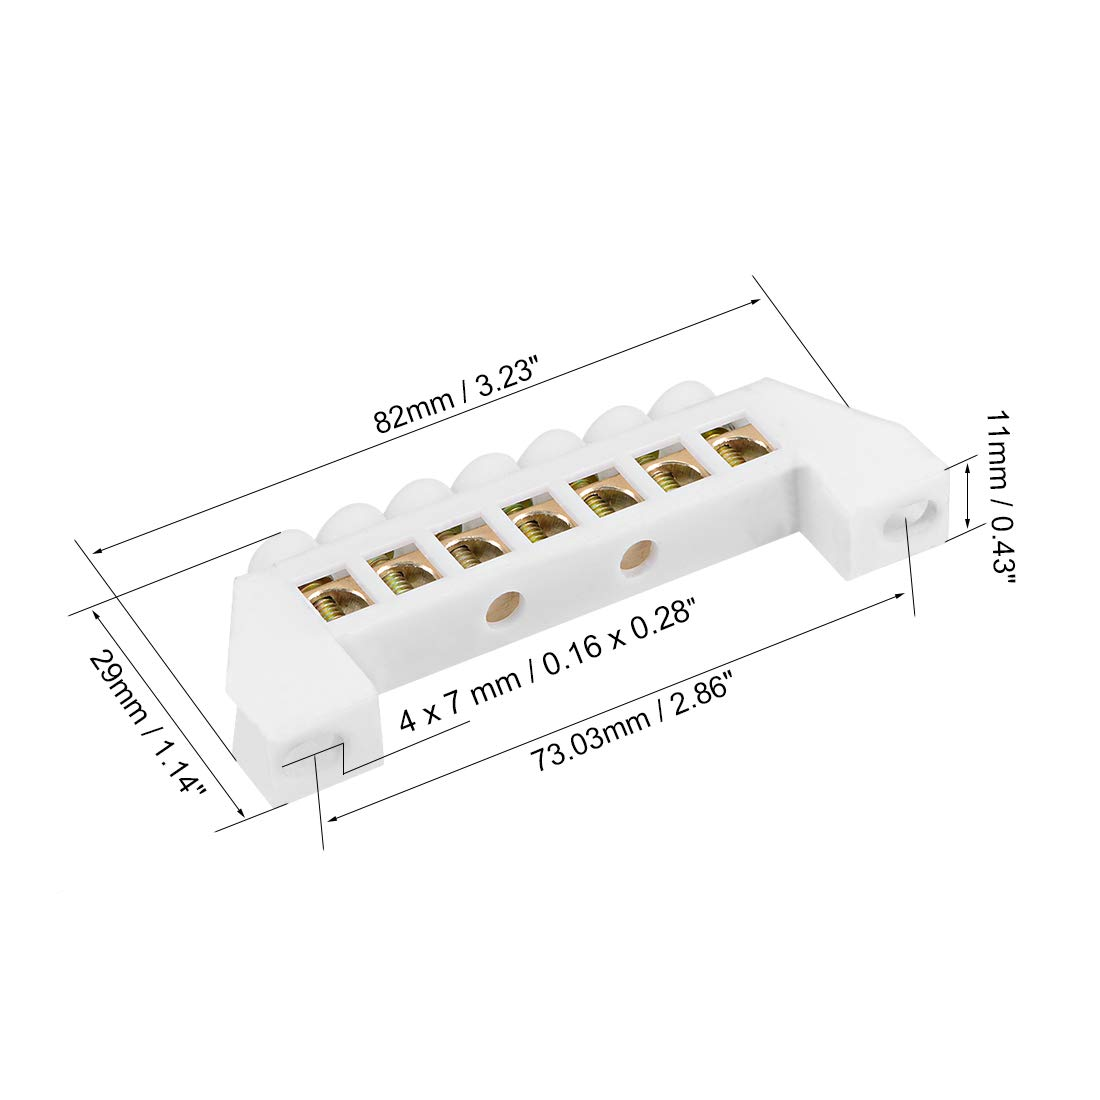 uxcell 5 Positions Copper Screw Terminal Block Barrier Strip Connector Single Row Bridge Shape for Electrical Distribution